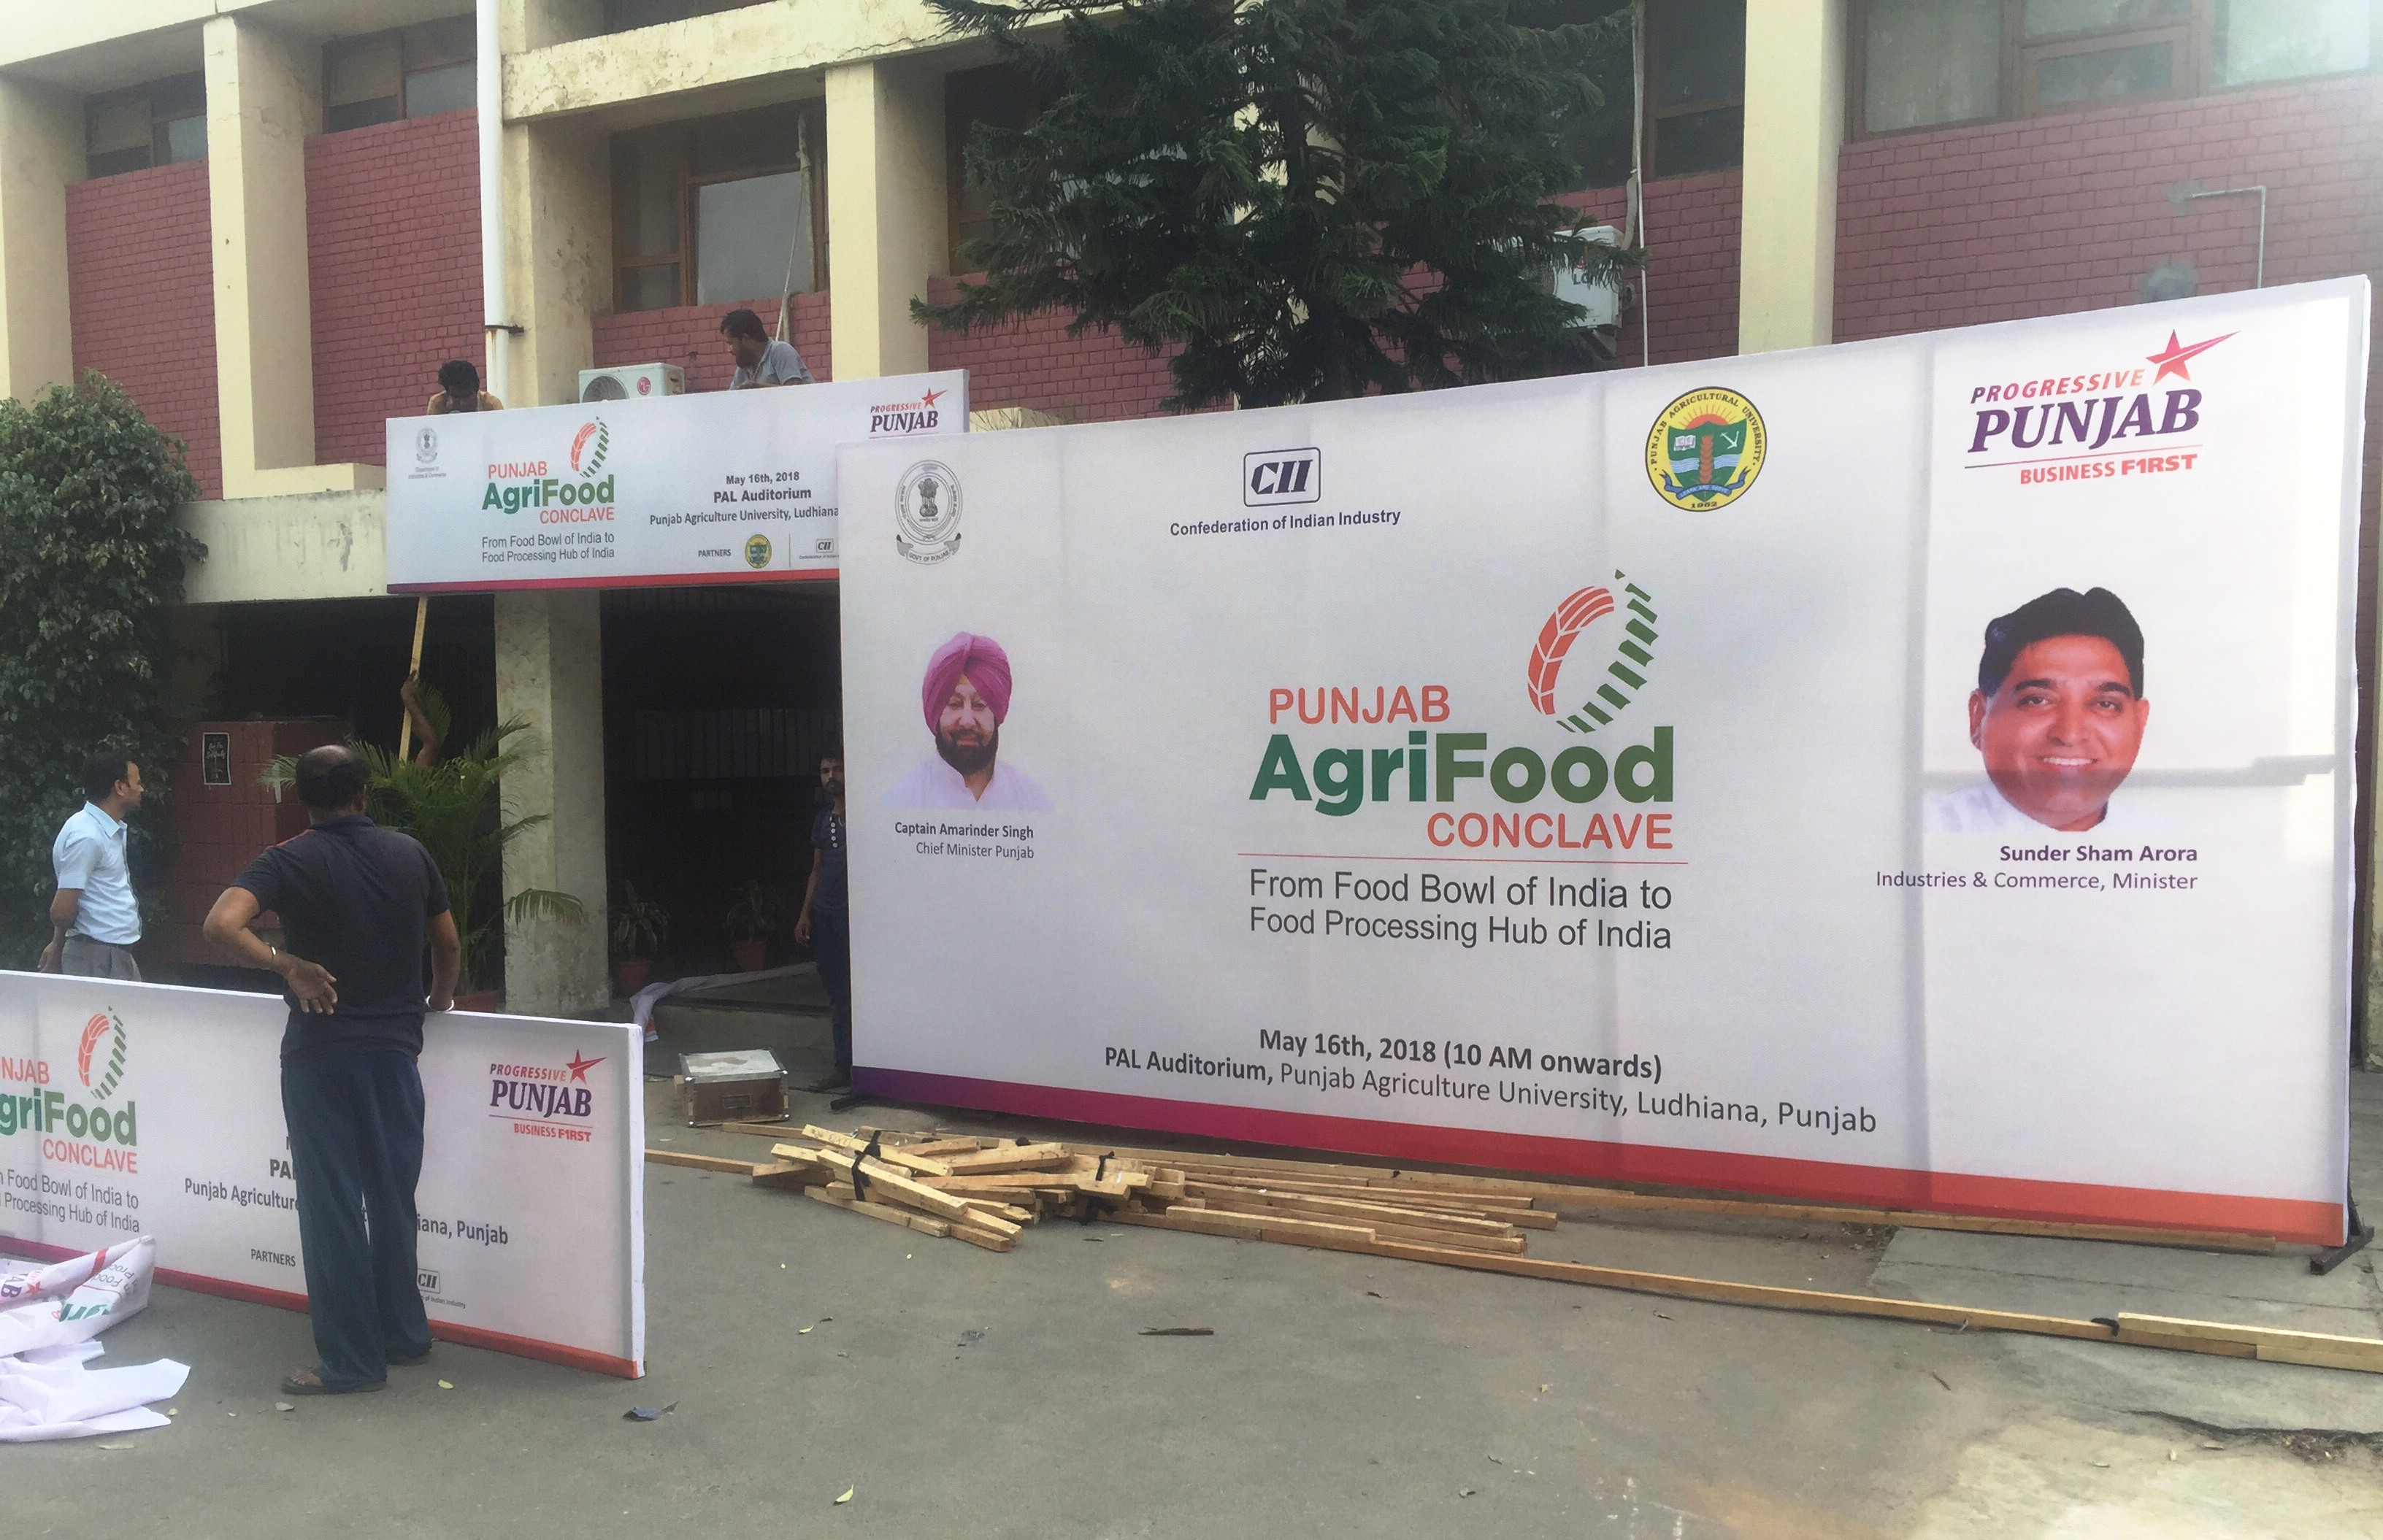 PUNJAB GOVERNMENT IN PARTNERSHIP WITH CONFEDERATION OF INDIAN